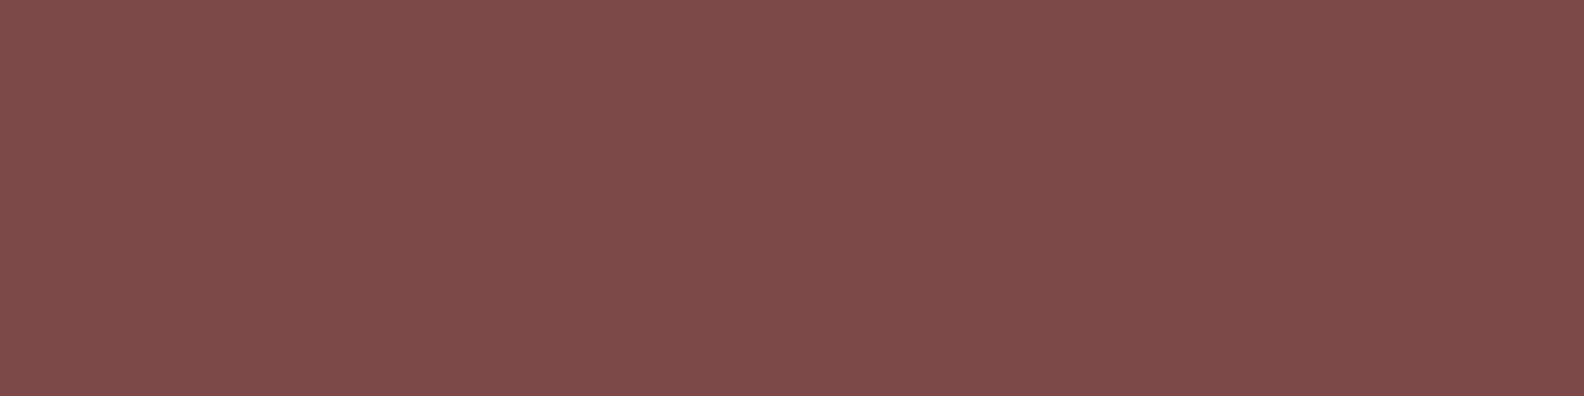 1584x396 Tuscan Red Solid Color Background